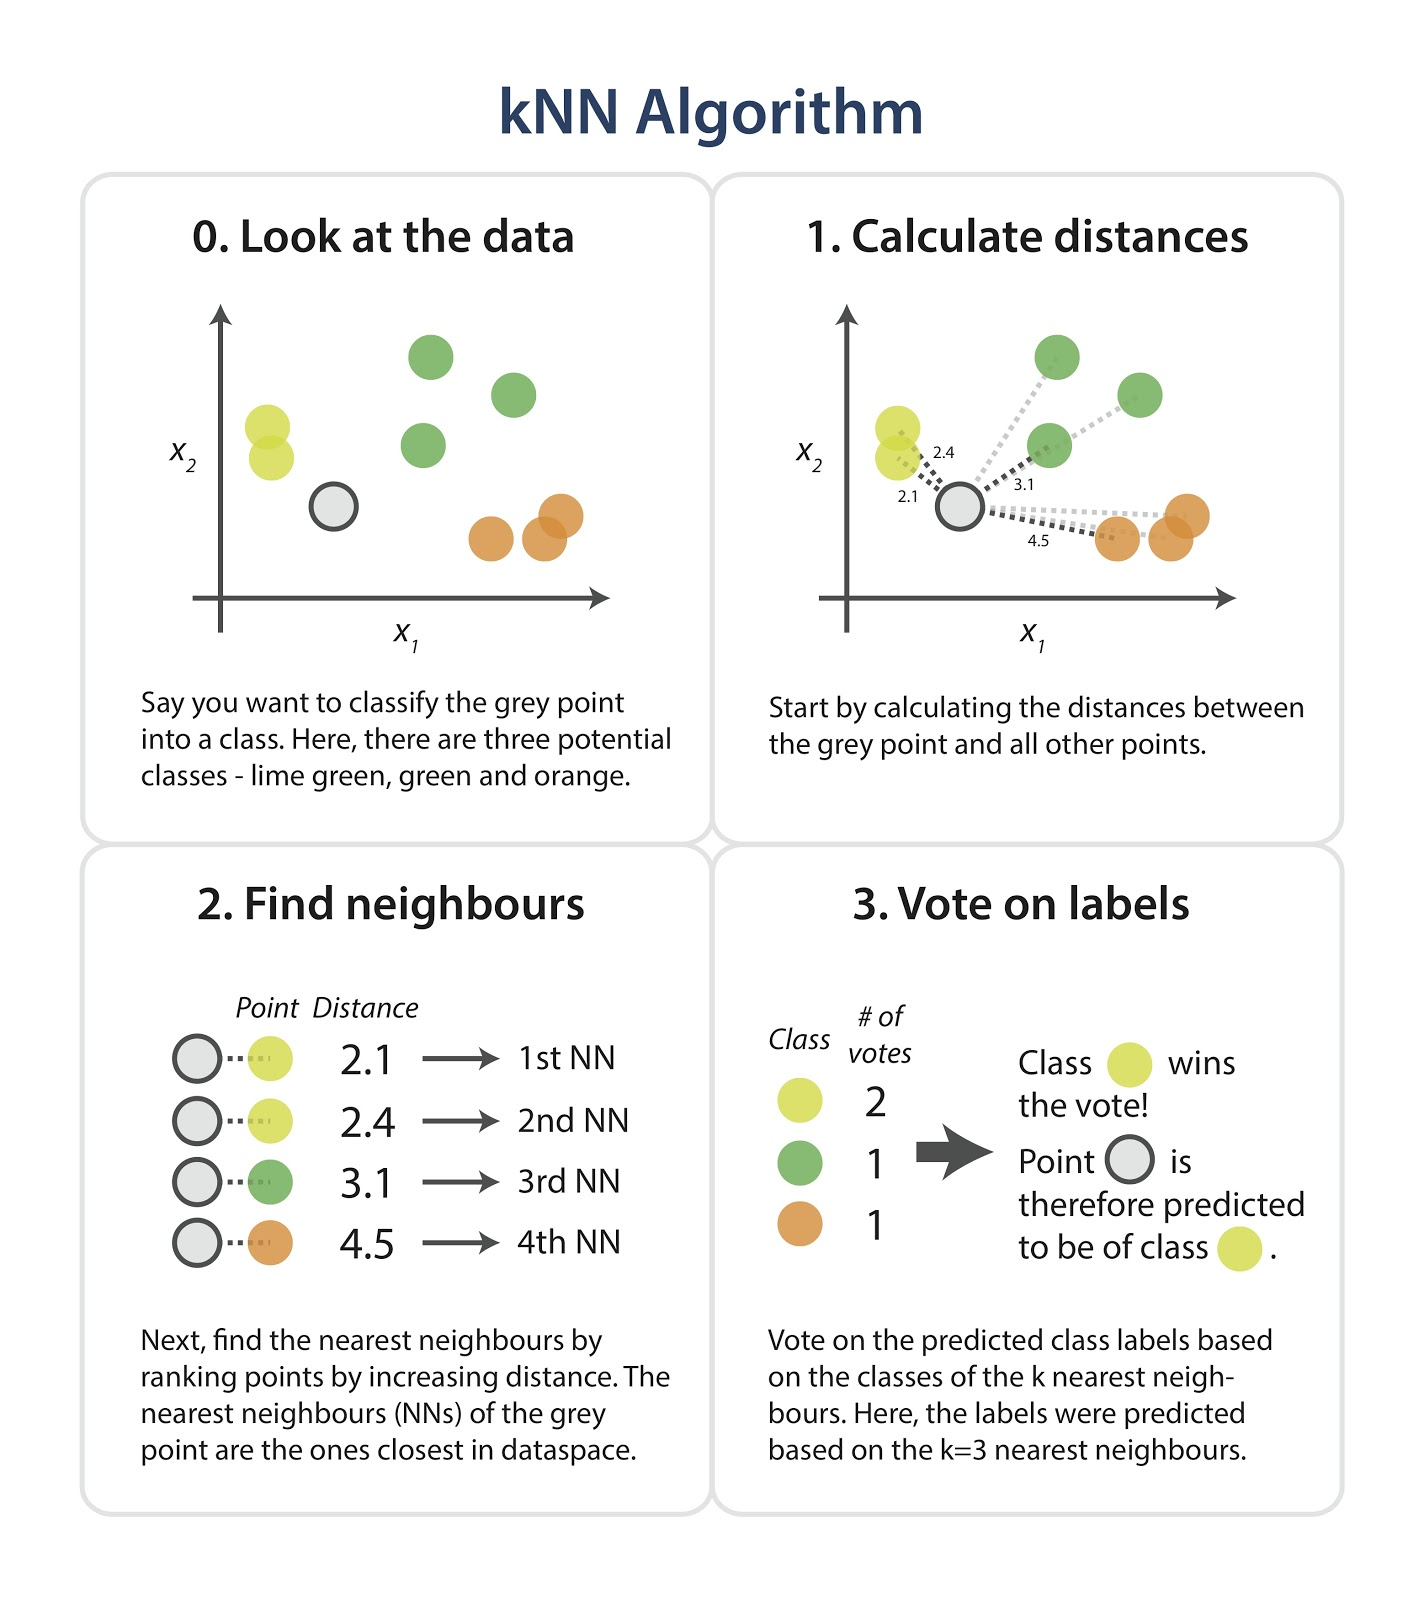 Implementing Your Own k-Nearest Neighbor Algorithm Using Python